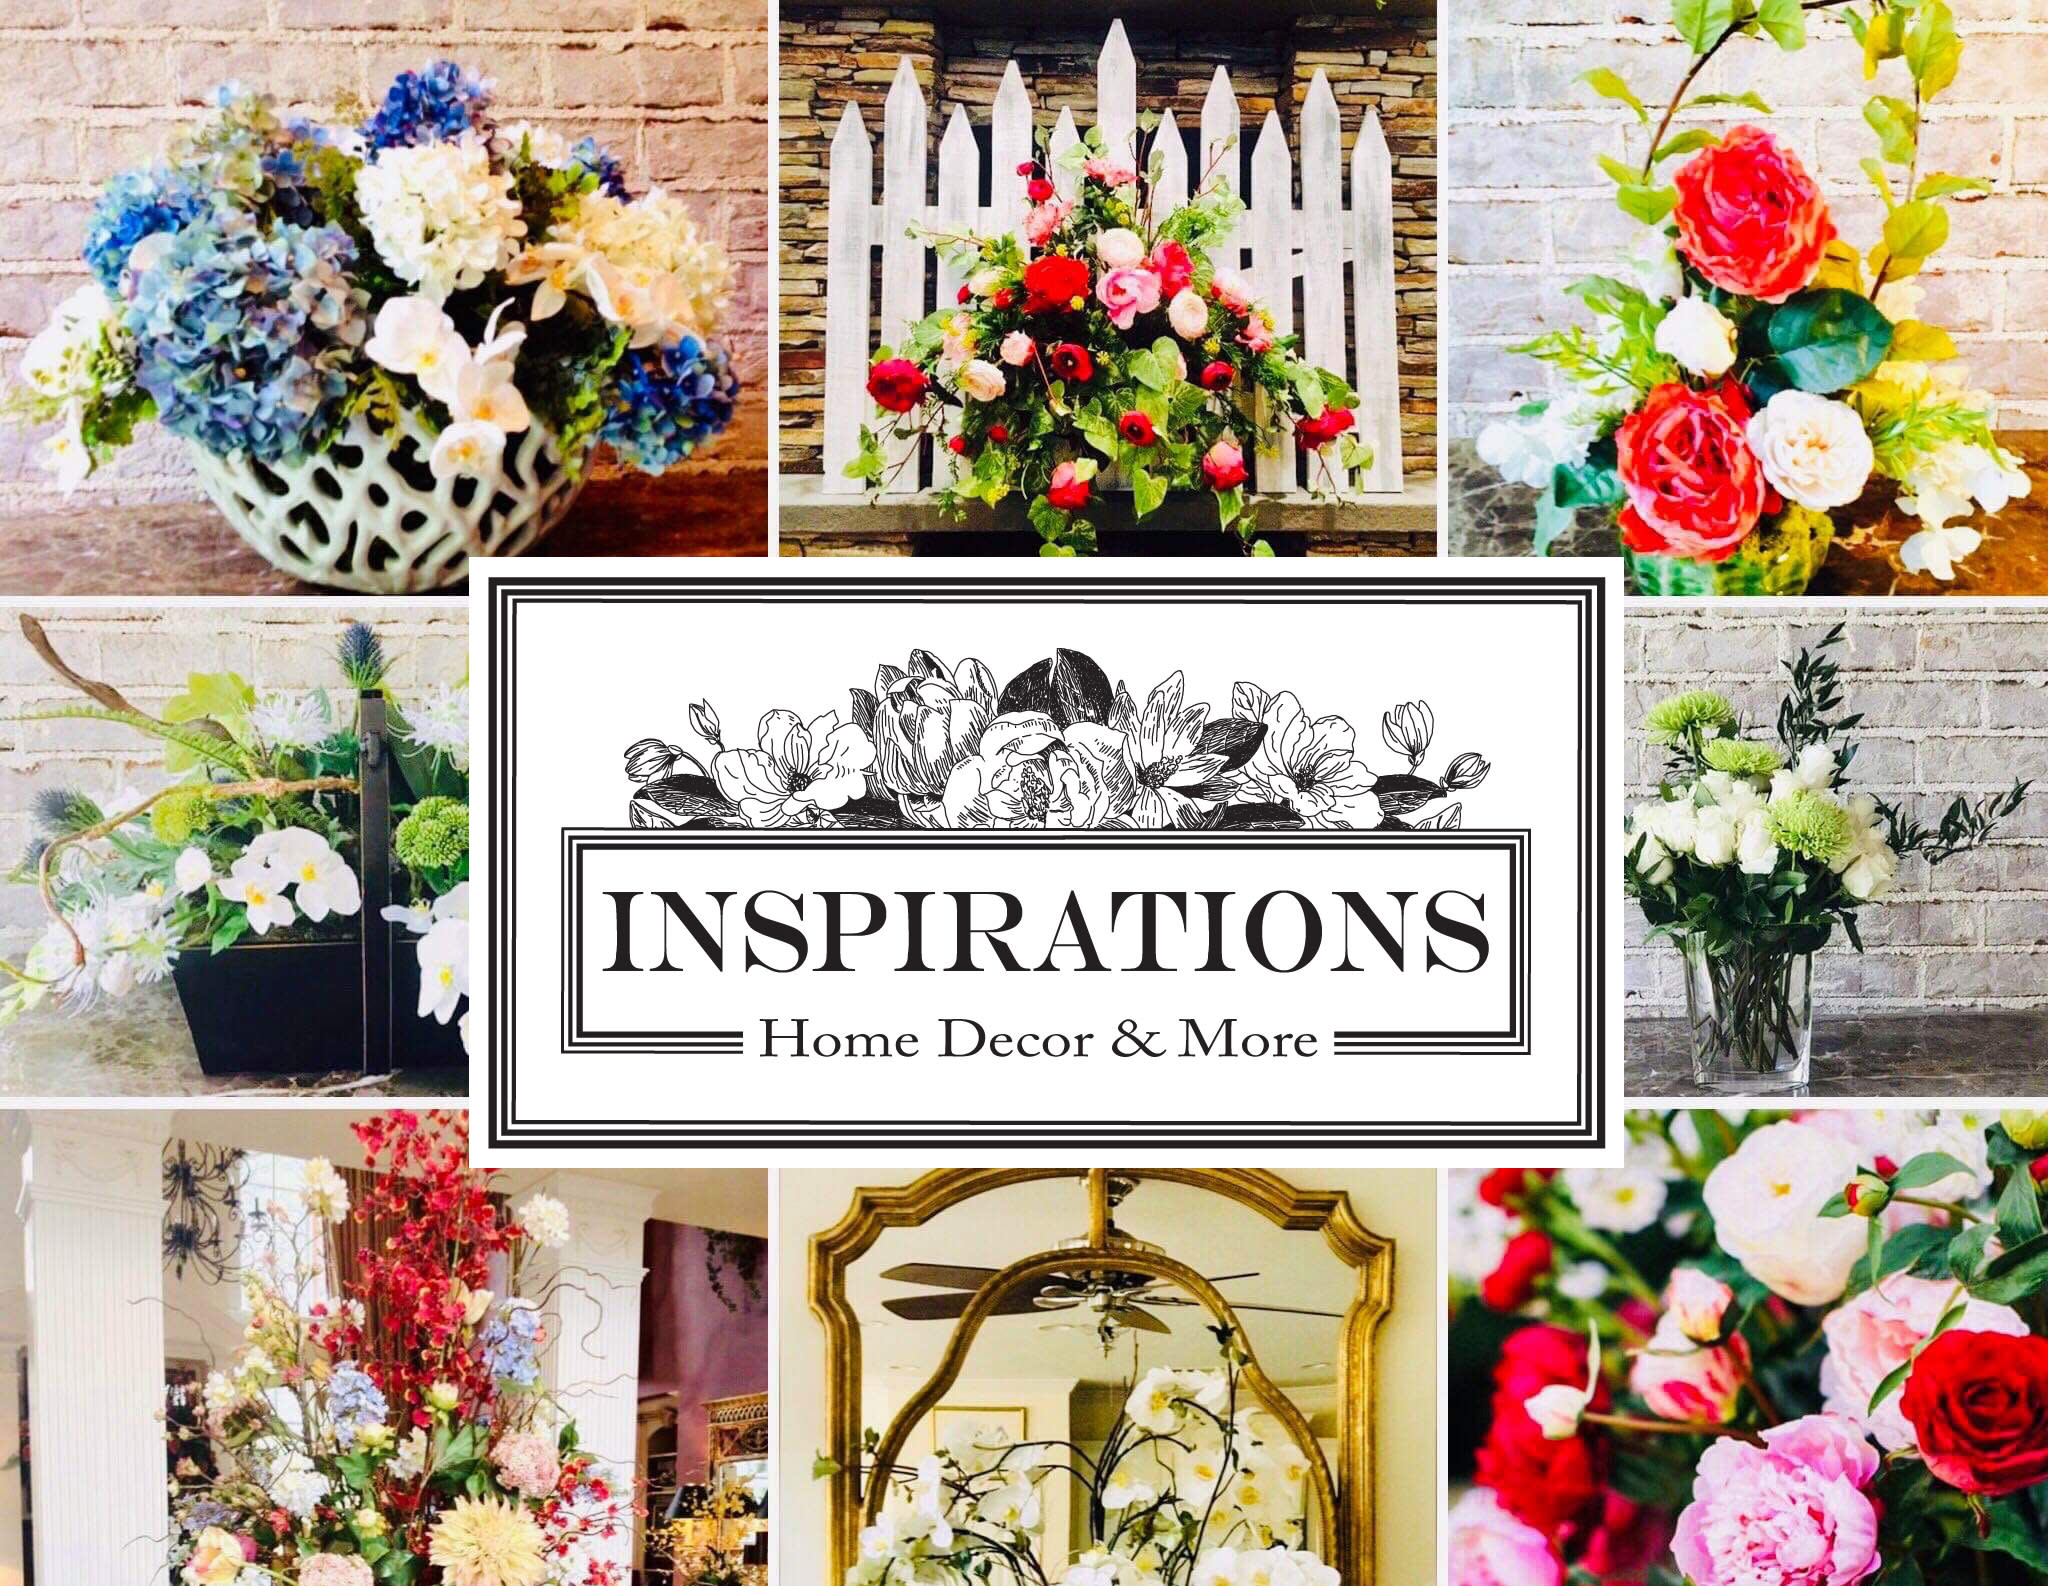 Garden to table floral arranging demonstration raleigh nc 27617